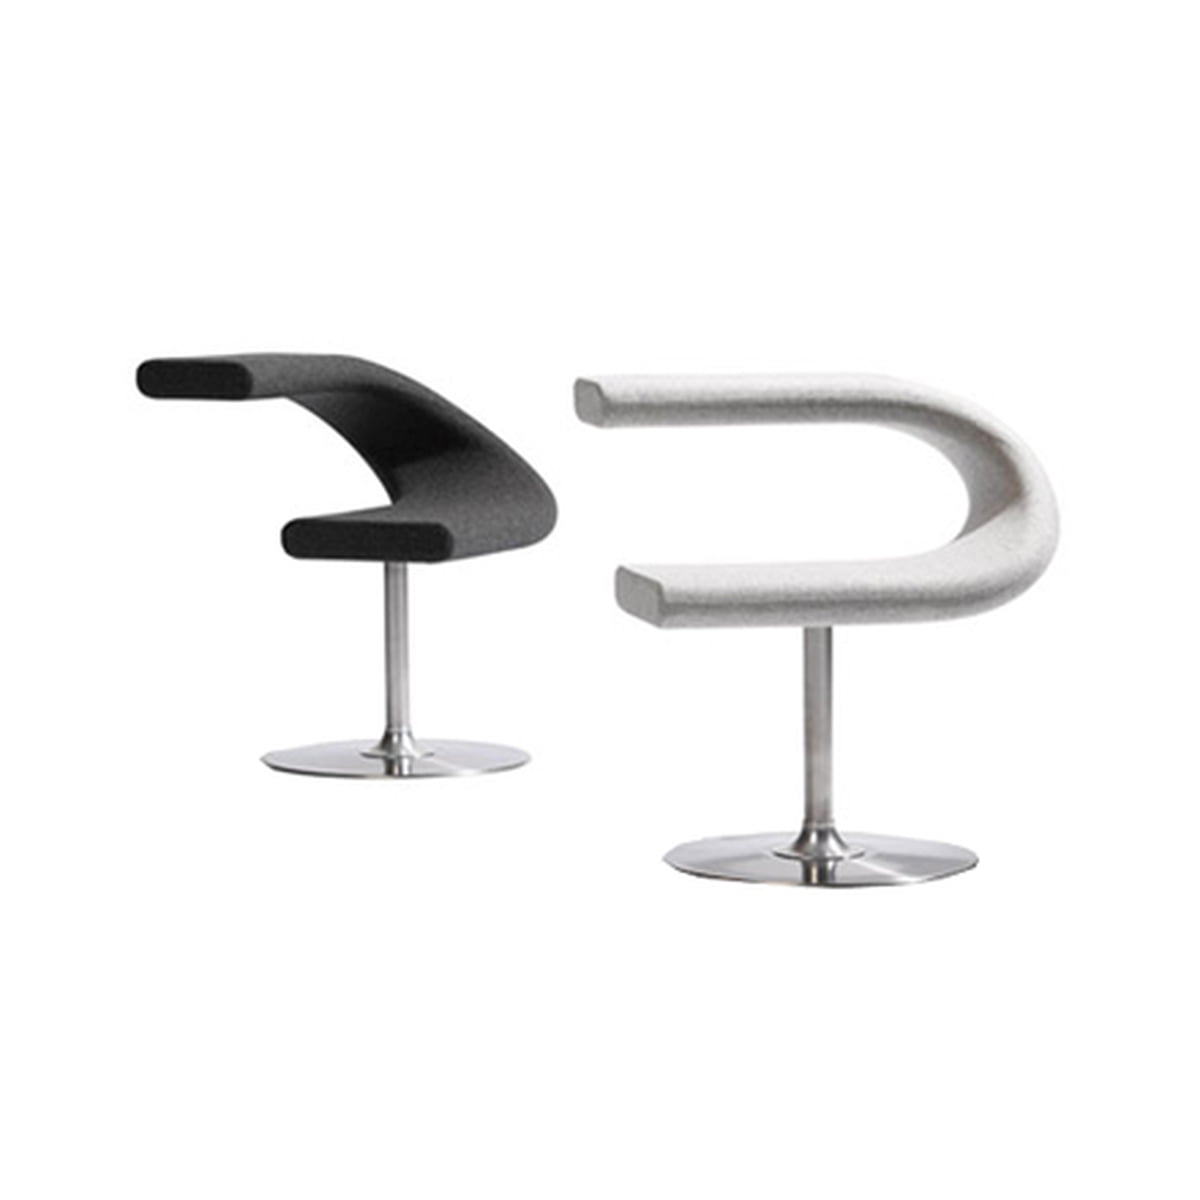 Chaise innovation c boutique bla station - La chaise peekaboo par bla station ...